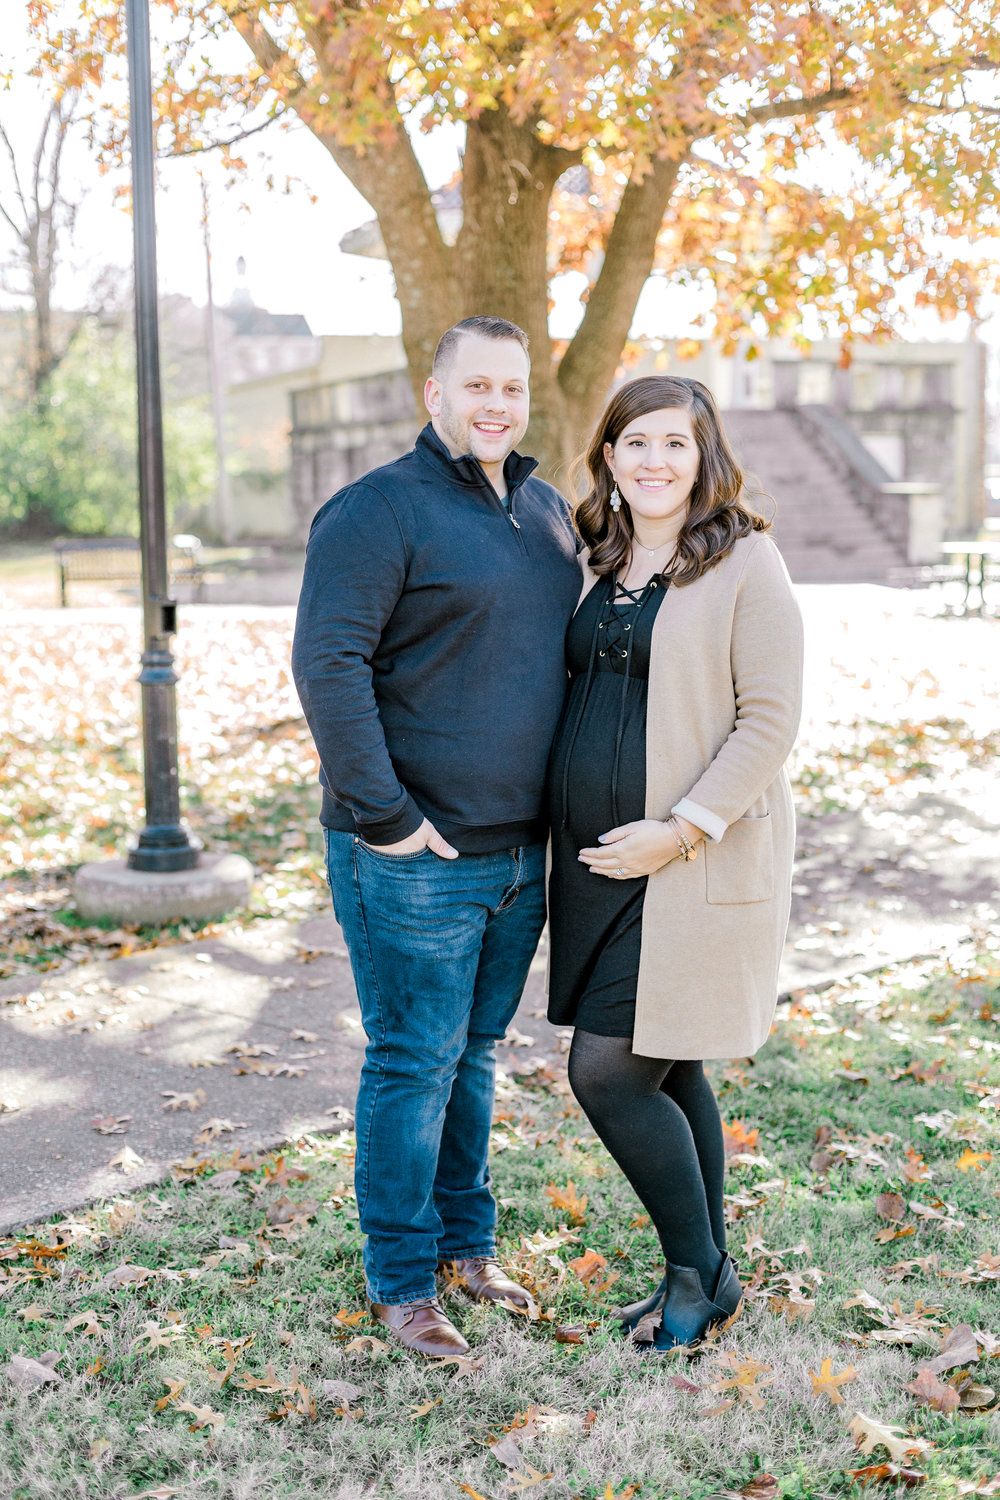 kentucky Fall Family maternity session engagement session wedding and lifestyle photographer Lytle Photo Co (55 of 87).jpg